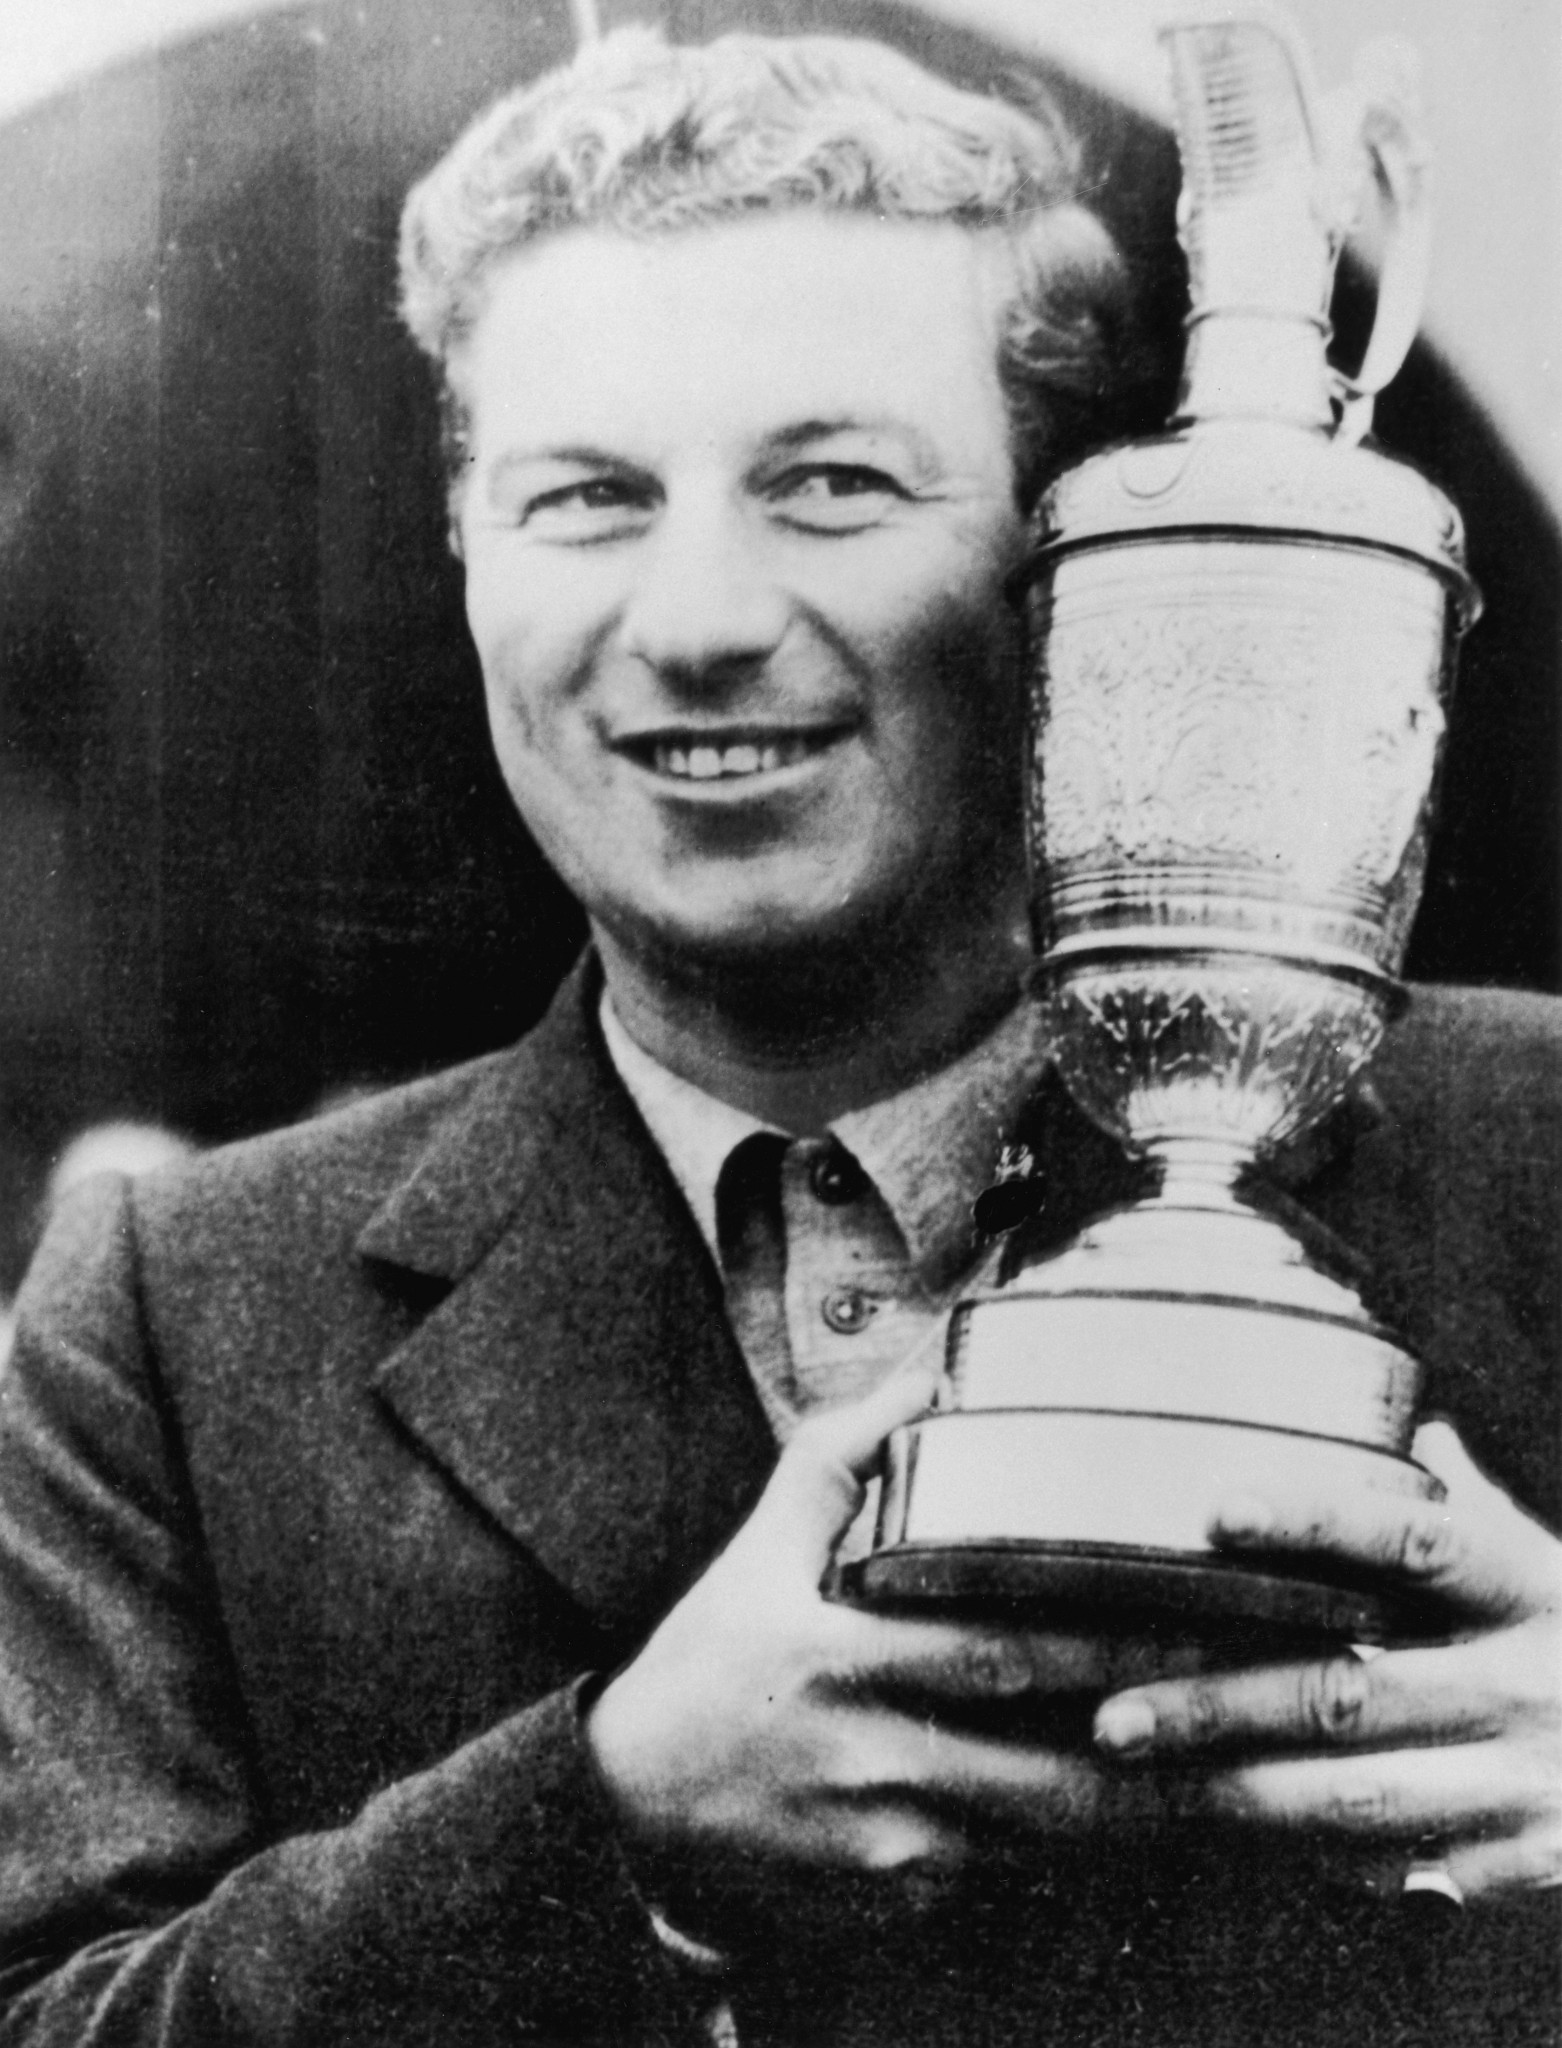 R&A pay tribute after five-time Open champion Thomson dies aged 88